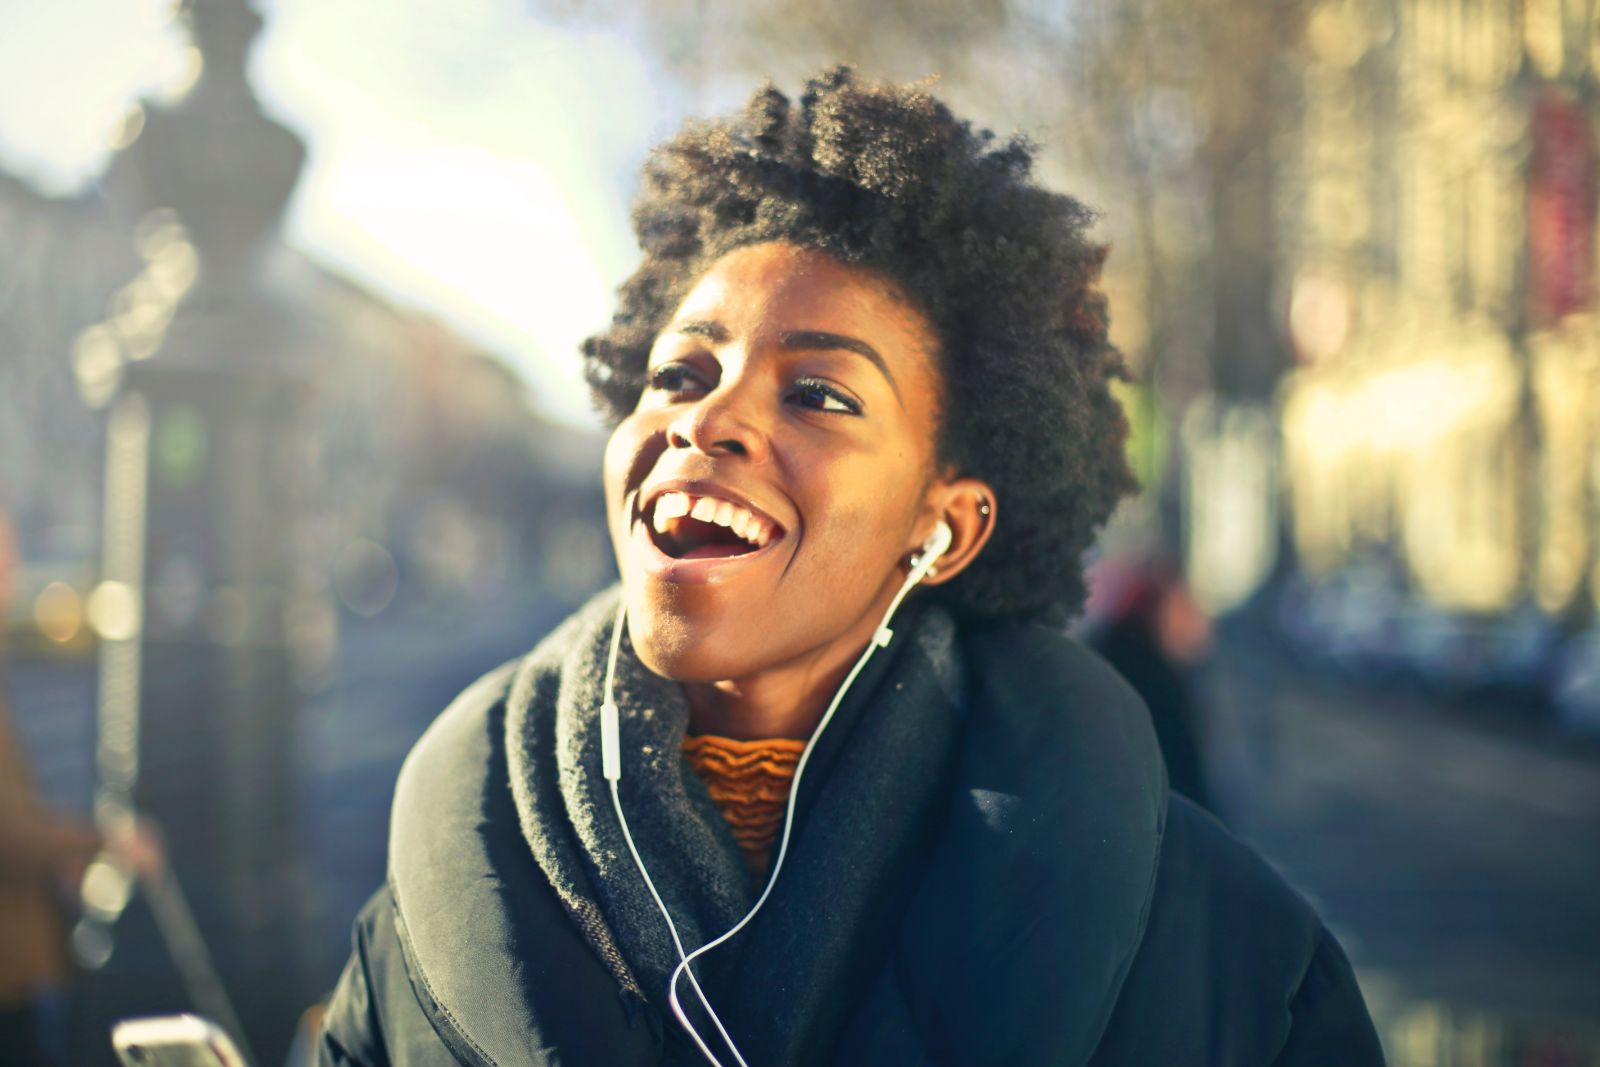 A young person singing along to music with their earphones in